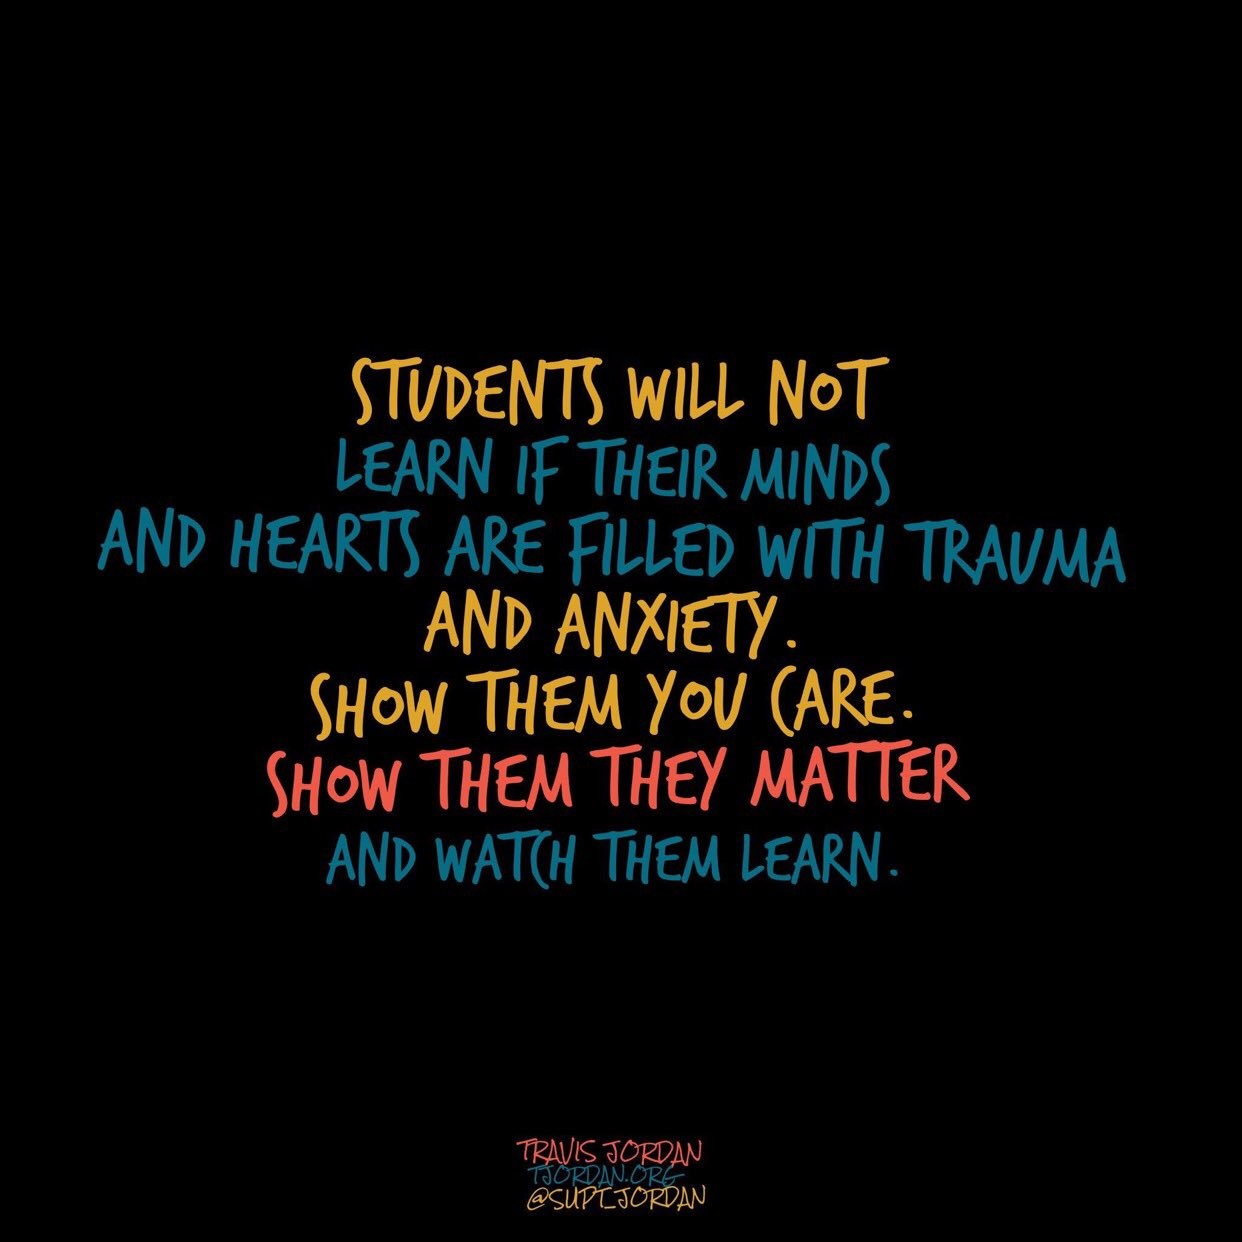 First step to learning is a genuine care for each and every student. #JoyfulLeaders #365in17 https://t.co/pBxSuNrDq7